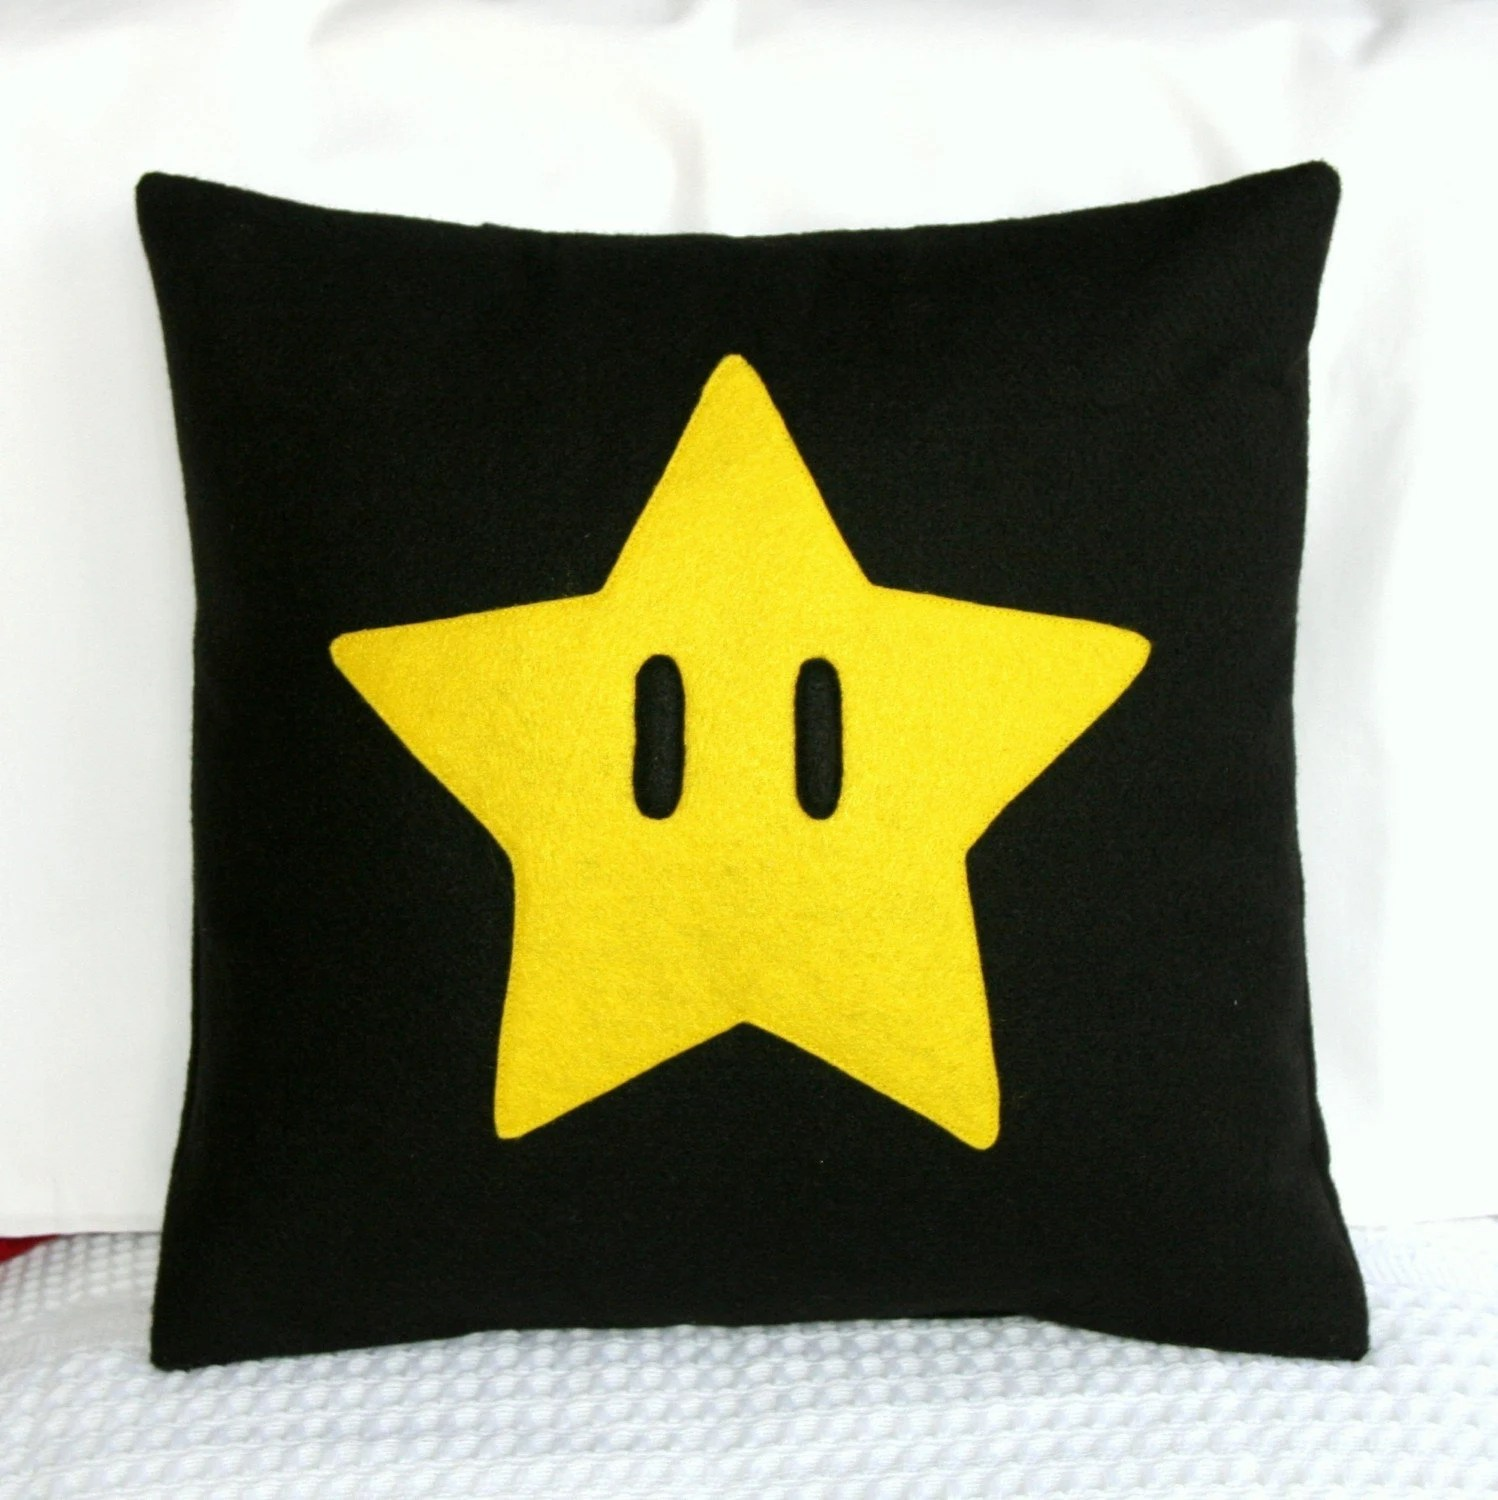 Super Mario Brothers Star Pillow Cover 14x14 inches by Modernality